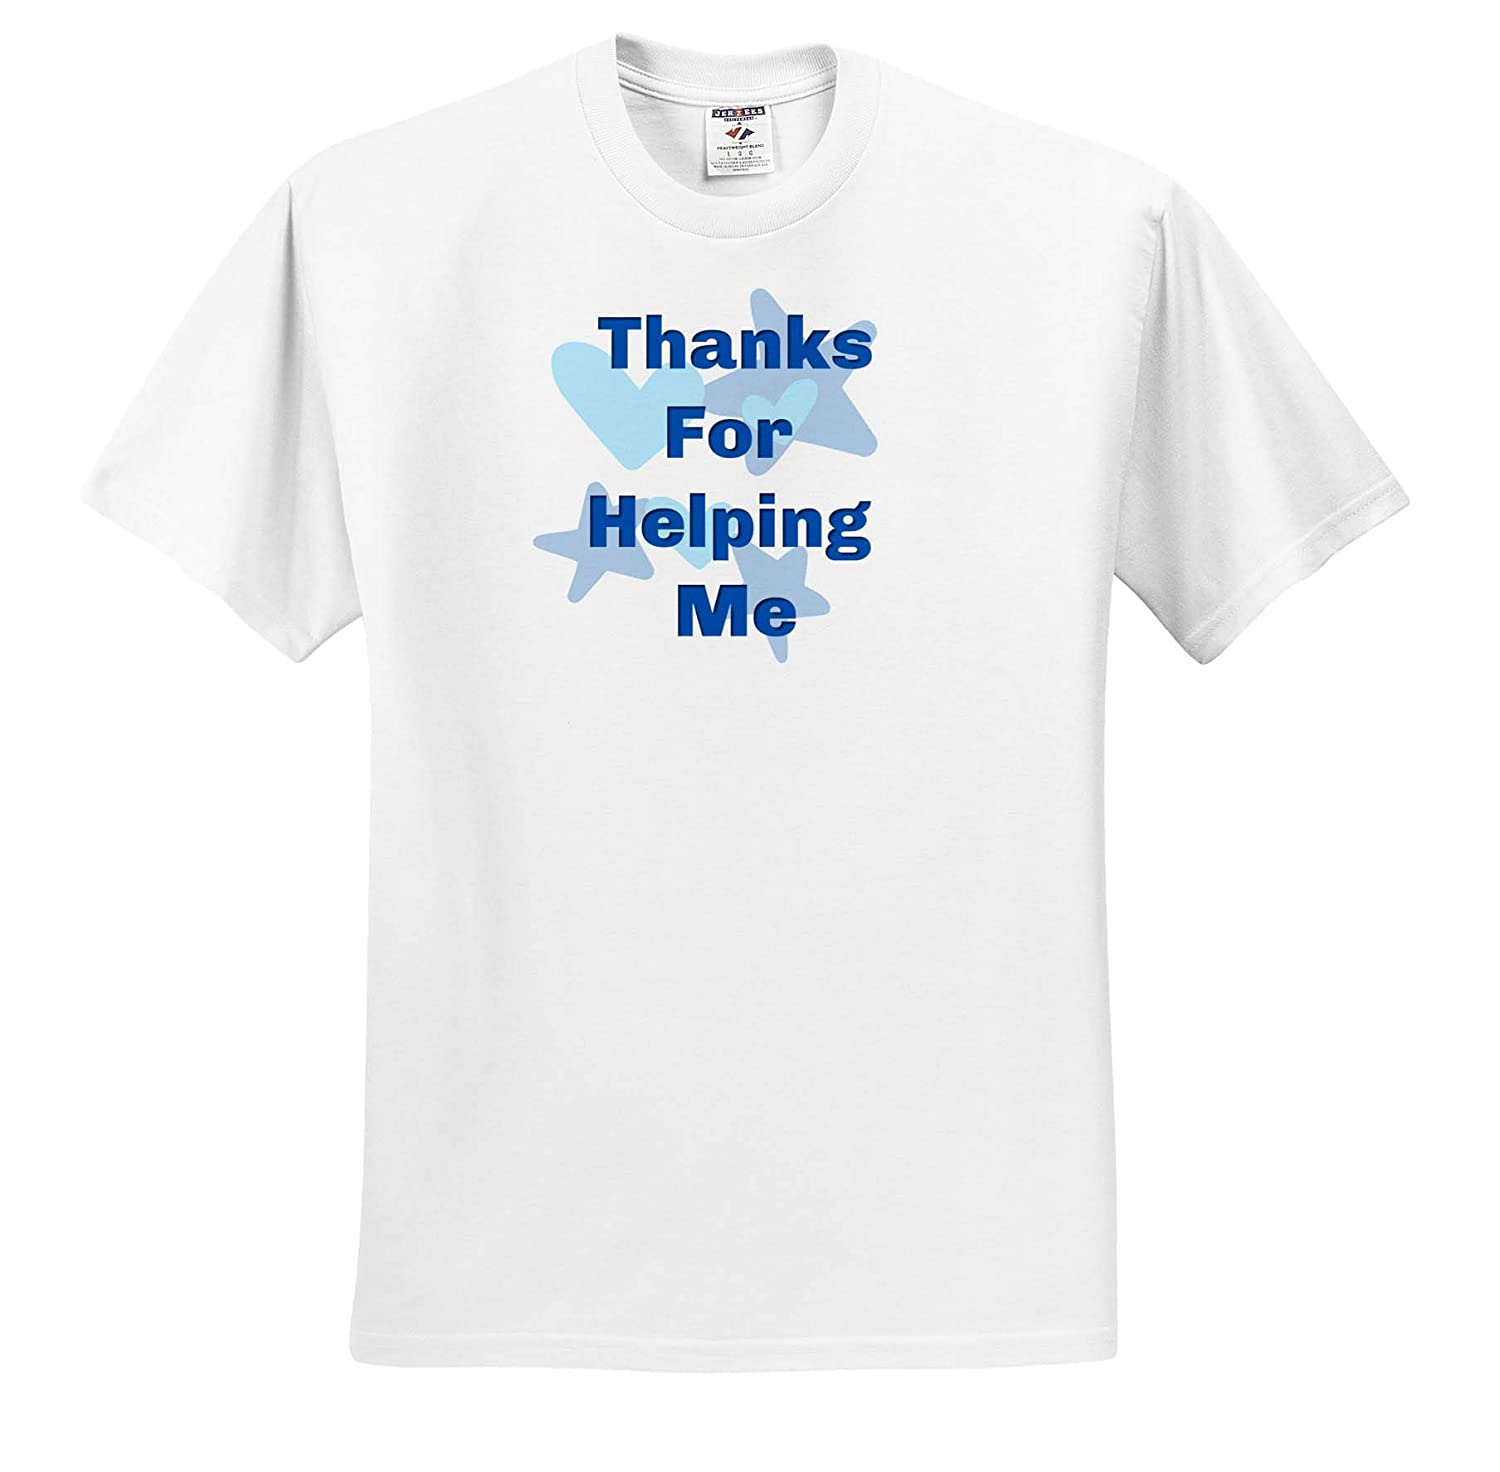 ts/_317449 Image of Thanks for Helping Me Adult T-Shirt XL 3dRose Carrie Merchant Image Quote